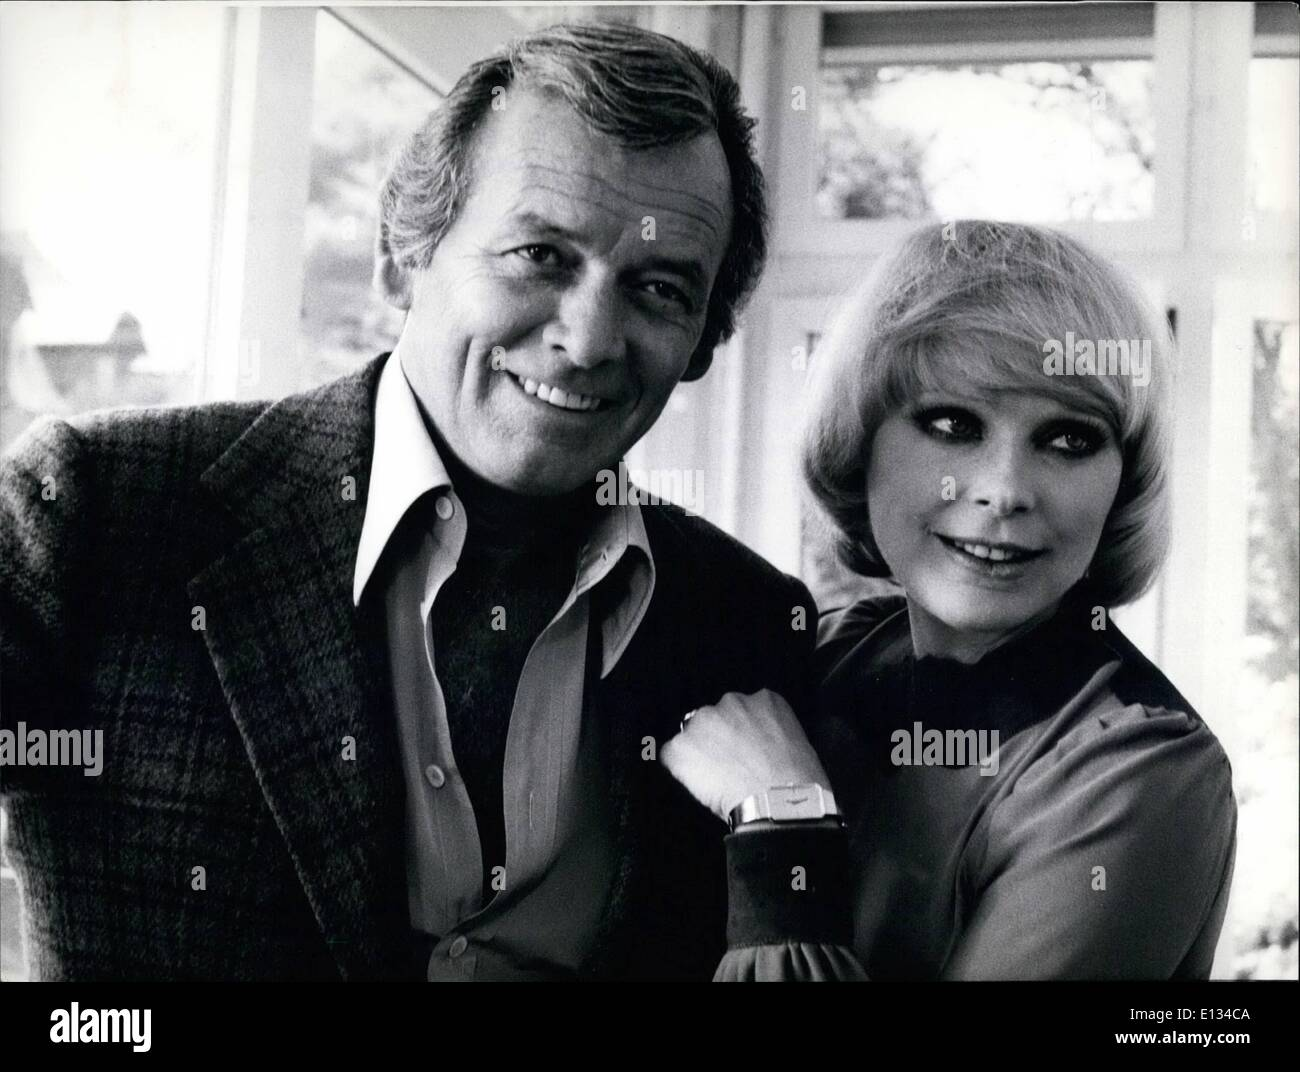 Feb. 26, 2012 - Film ''The Swiss Conspiracy'' With David Janssen And Elke Sommer Presently Being Shot in Munich: ''The Swiss Conspiracy'' is the title of the German-American feature film,which is presently being shot in Munich and Switzerland. It tells the story of an international blackmail case on a large scale in Switzerland. ''the Swiss Conspiracy'' is directed by the American director Jack Arnold. Photo shows. David janssen and Elke Sommer, who have among others leading roles, during the shooting. - Stock Image